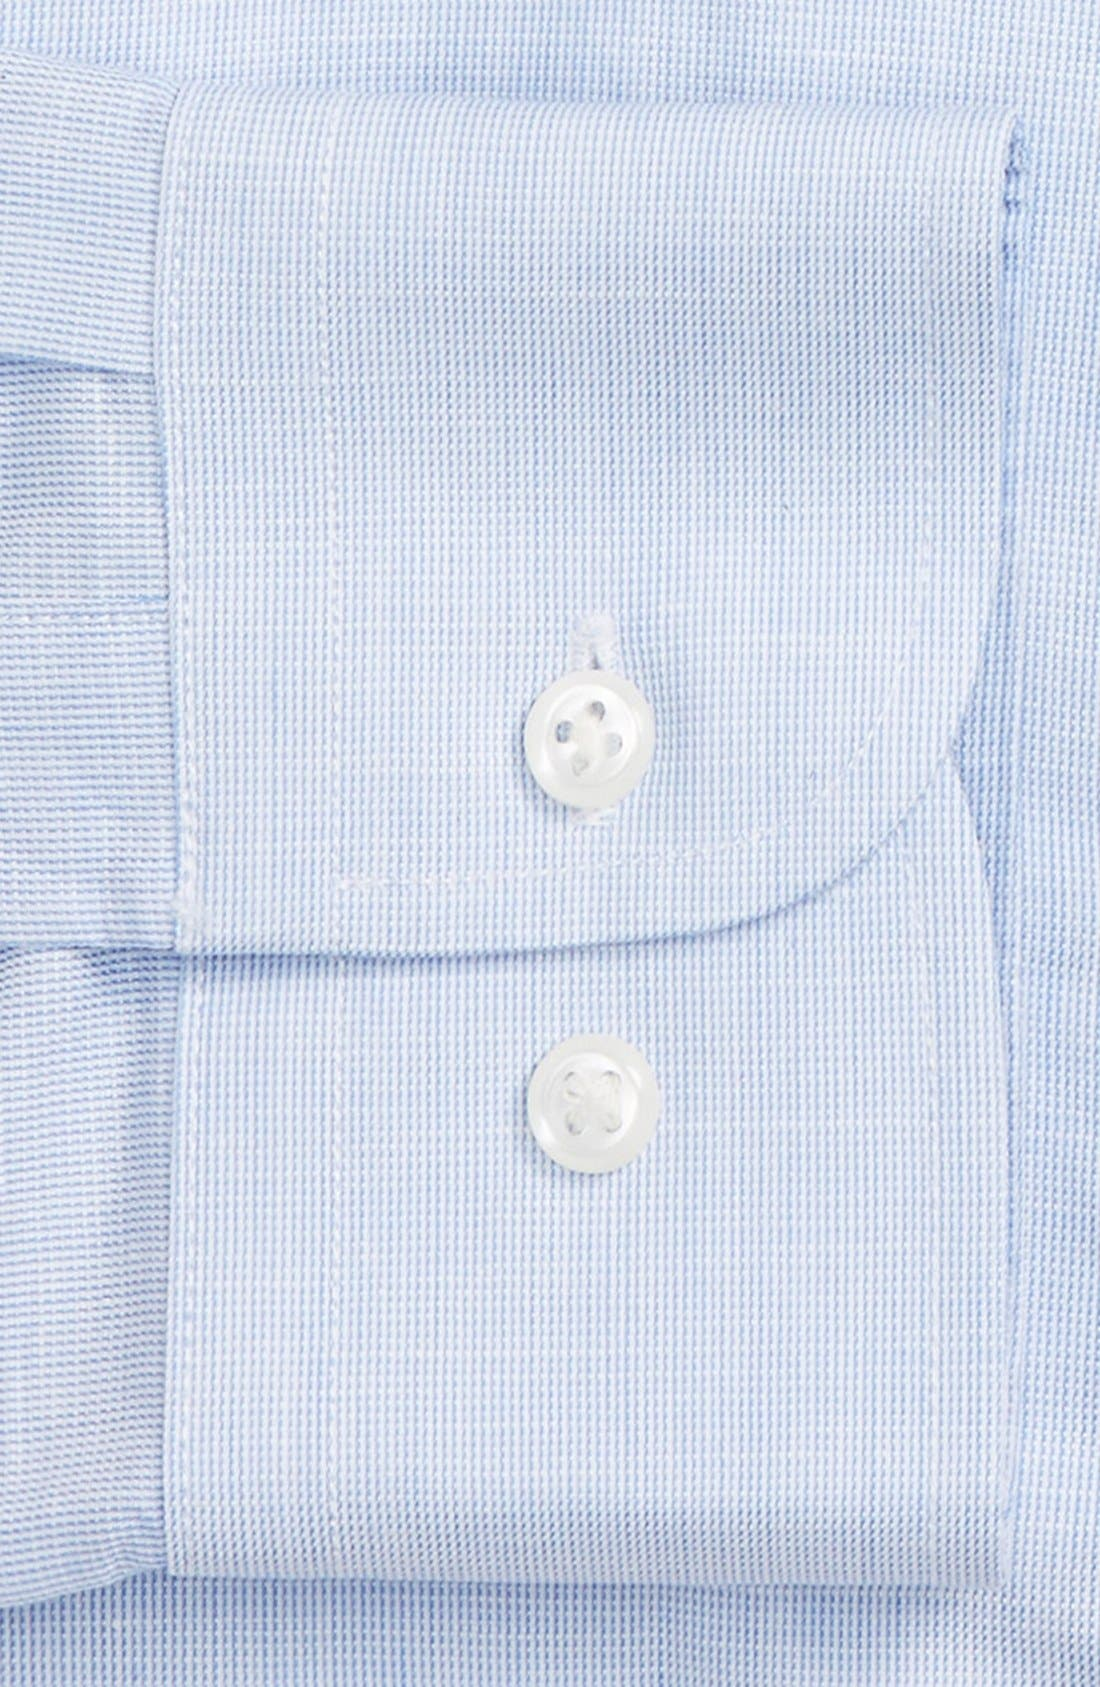 Trim Fit Solid Linen & Cotton Dress Shirt,                             Alternate thumbnail 34, color,